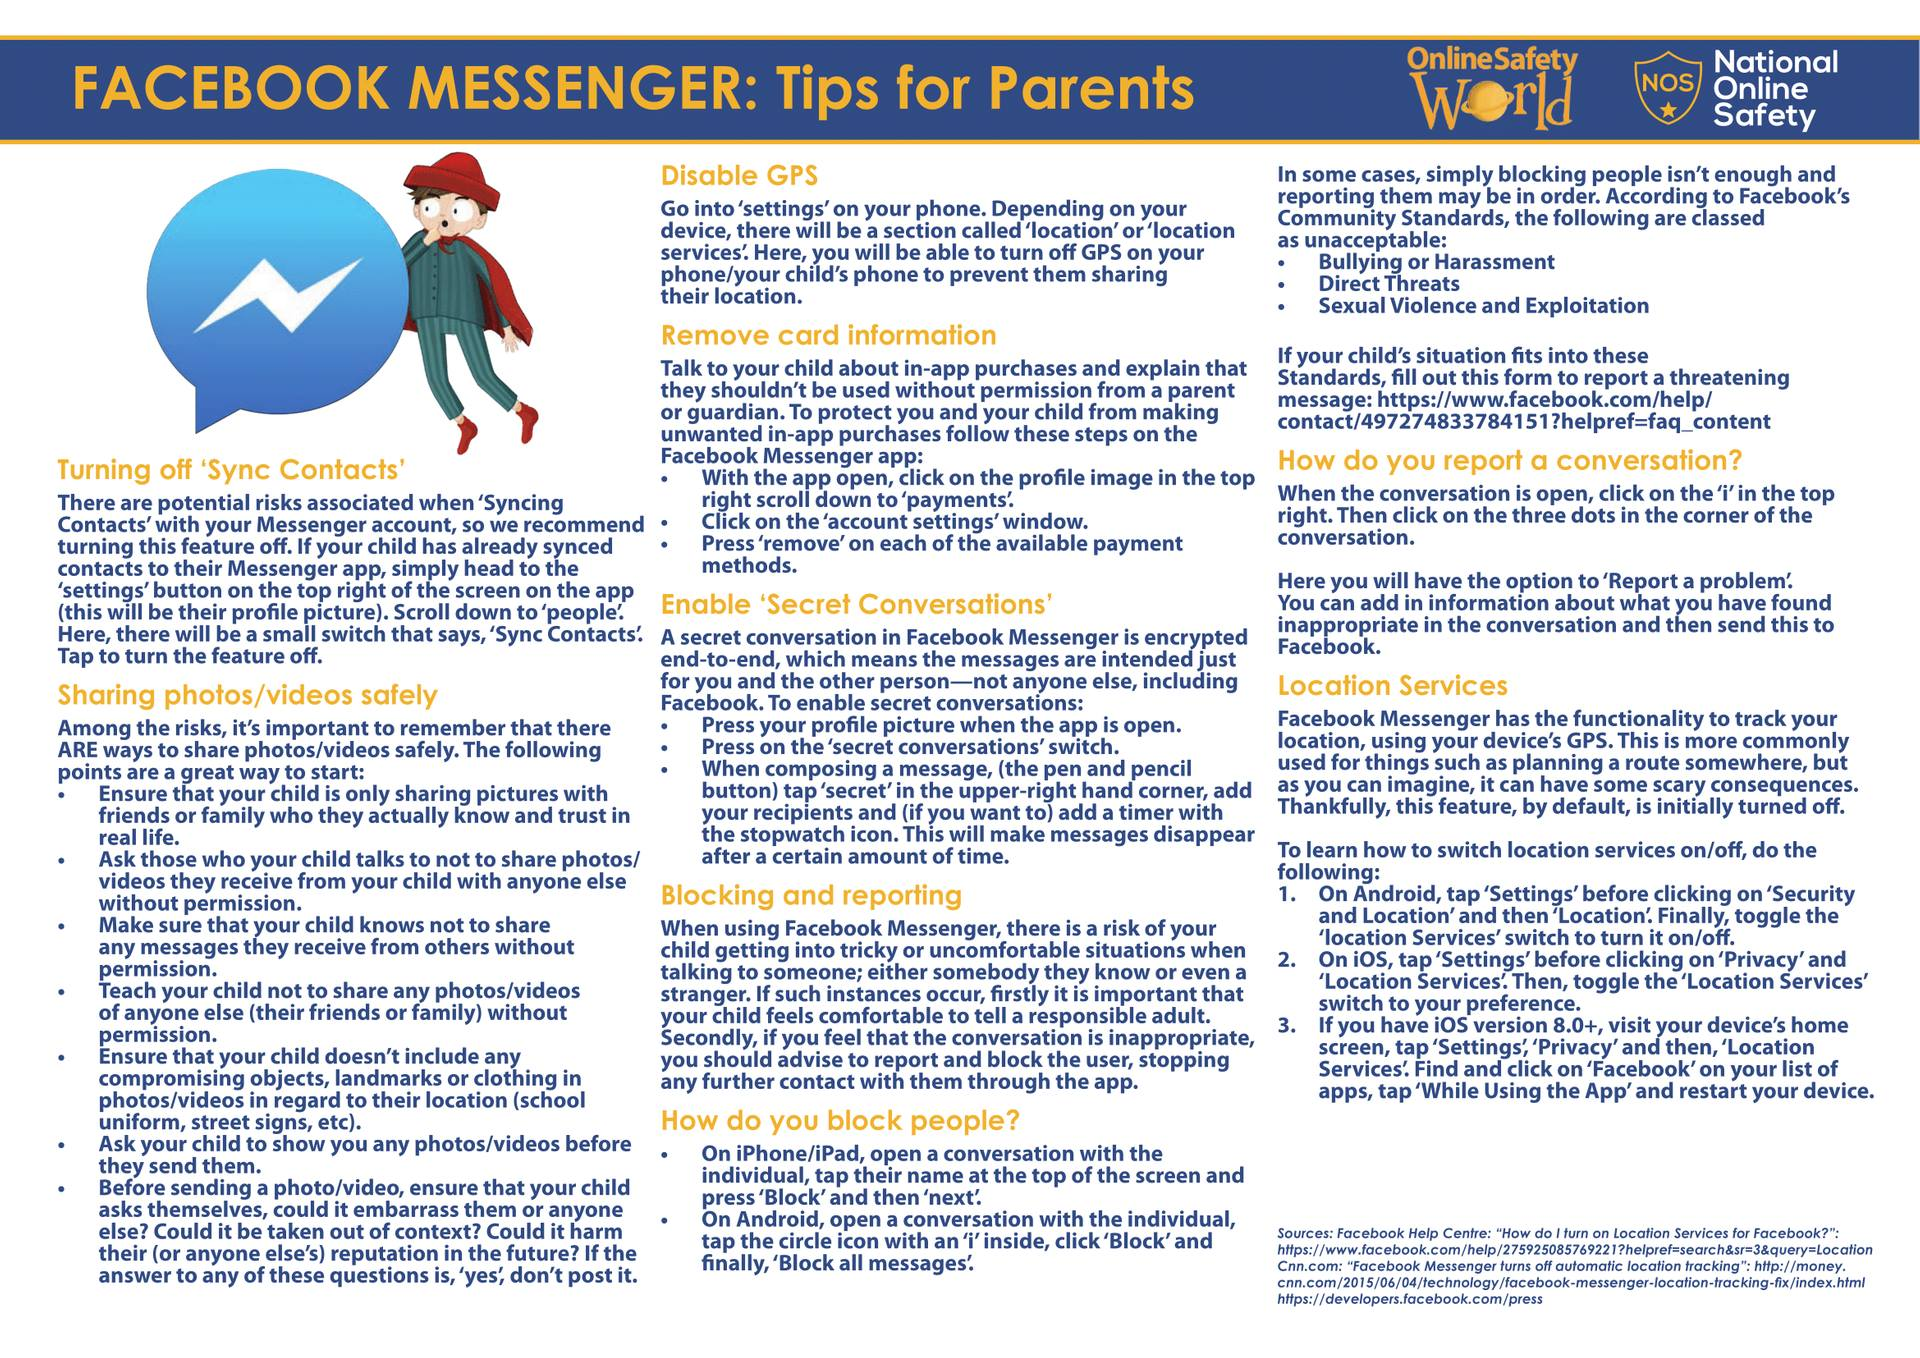 What parents need to know about Facebook Messenger